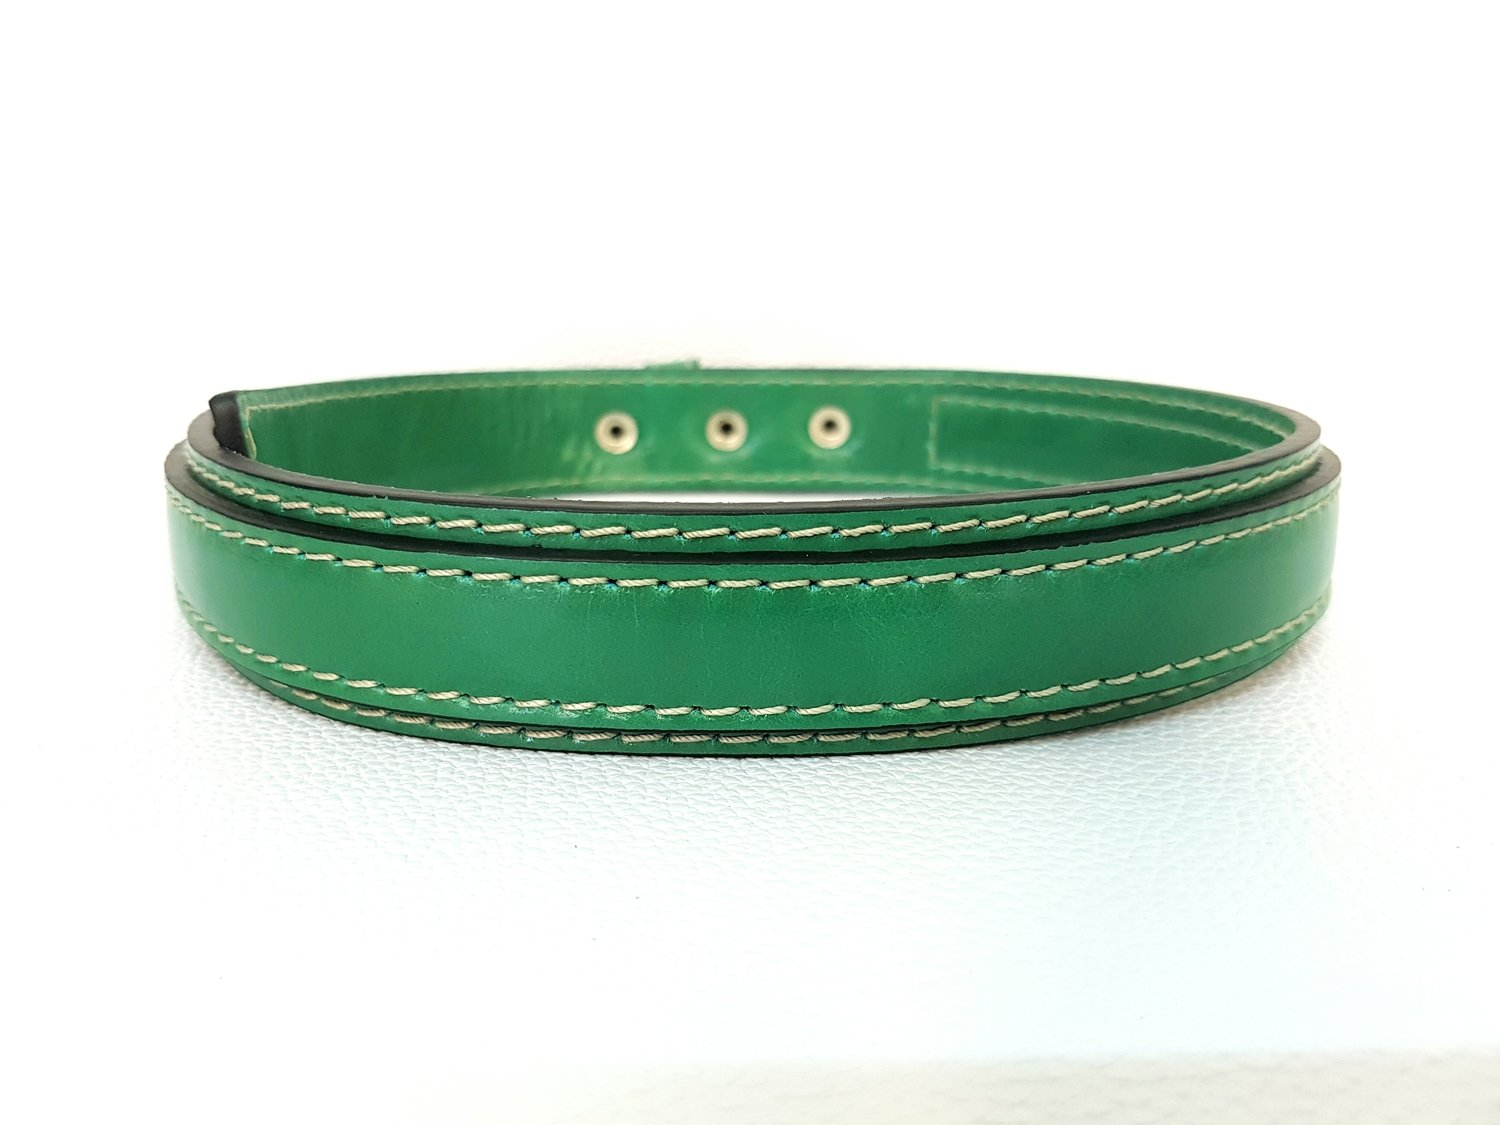 Verde / Green (3 cm /  1,18 inches)